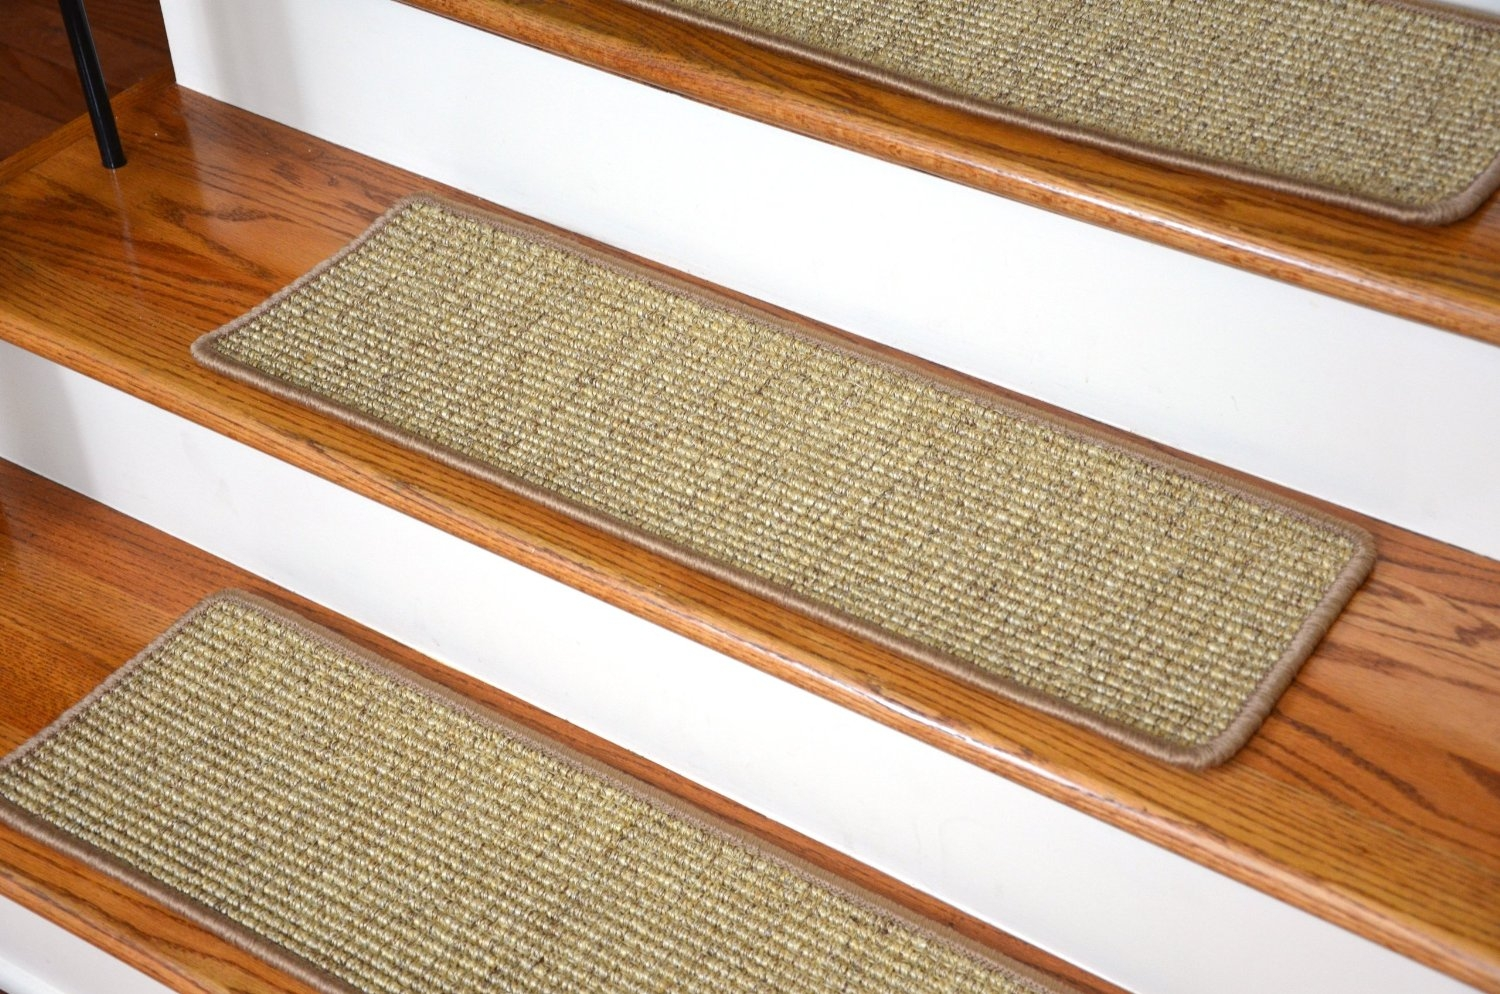 Flooring Pretty Stair Treads Carpet For Stair Decoration Idea Intended For Stair Tread Rug Covers (#8 of 20)